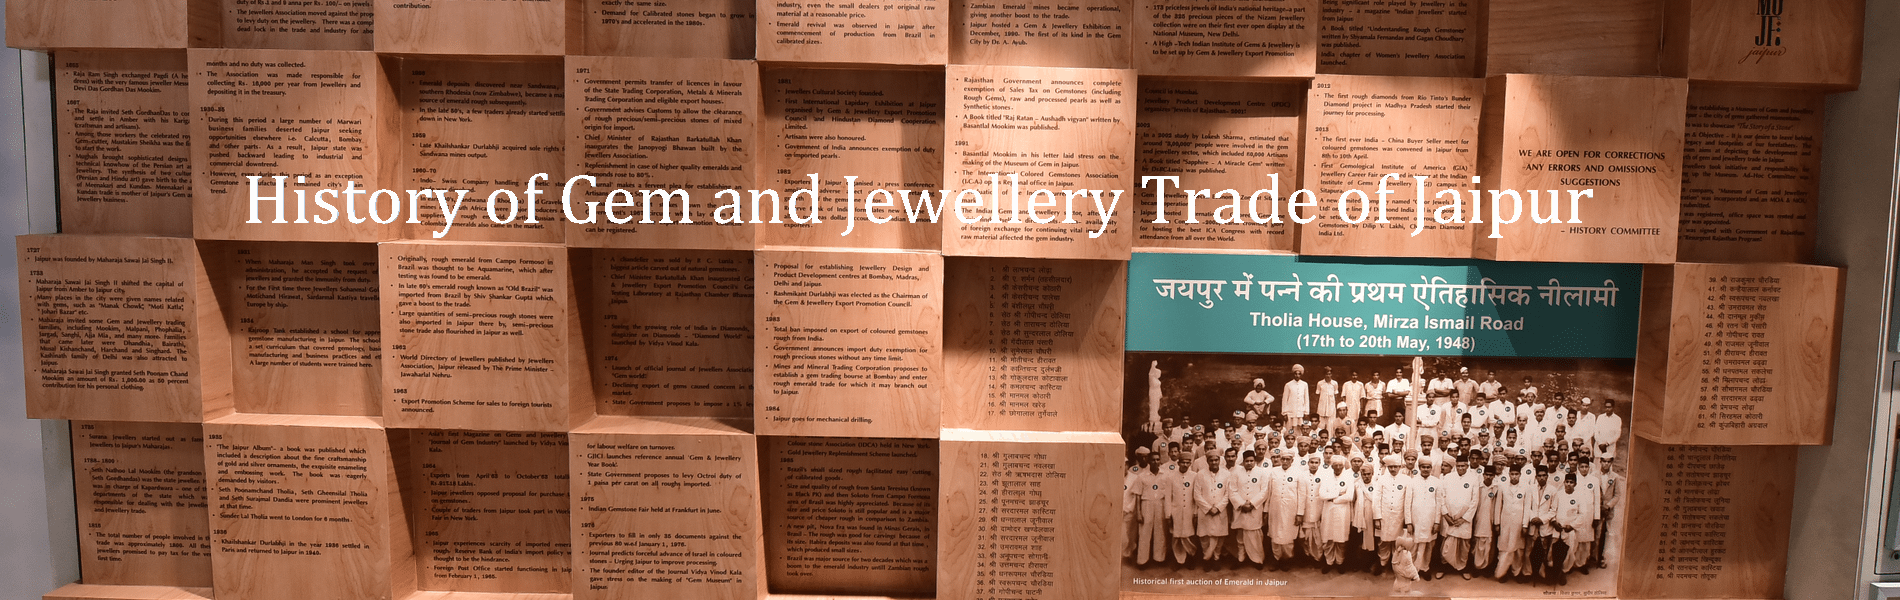 History of Gem and Jewellery Tradr of Jaipur